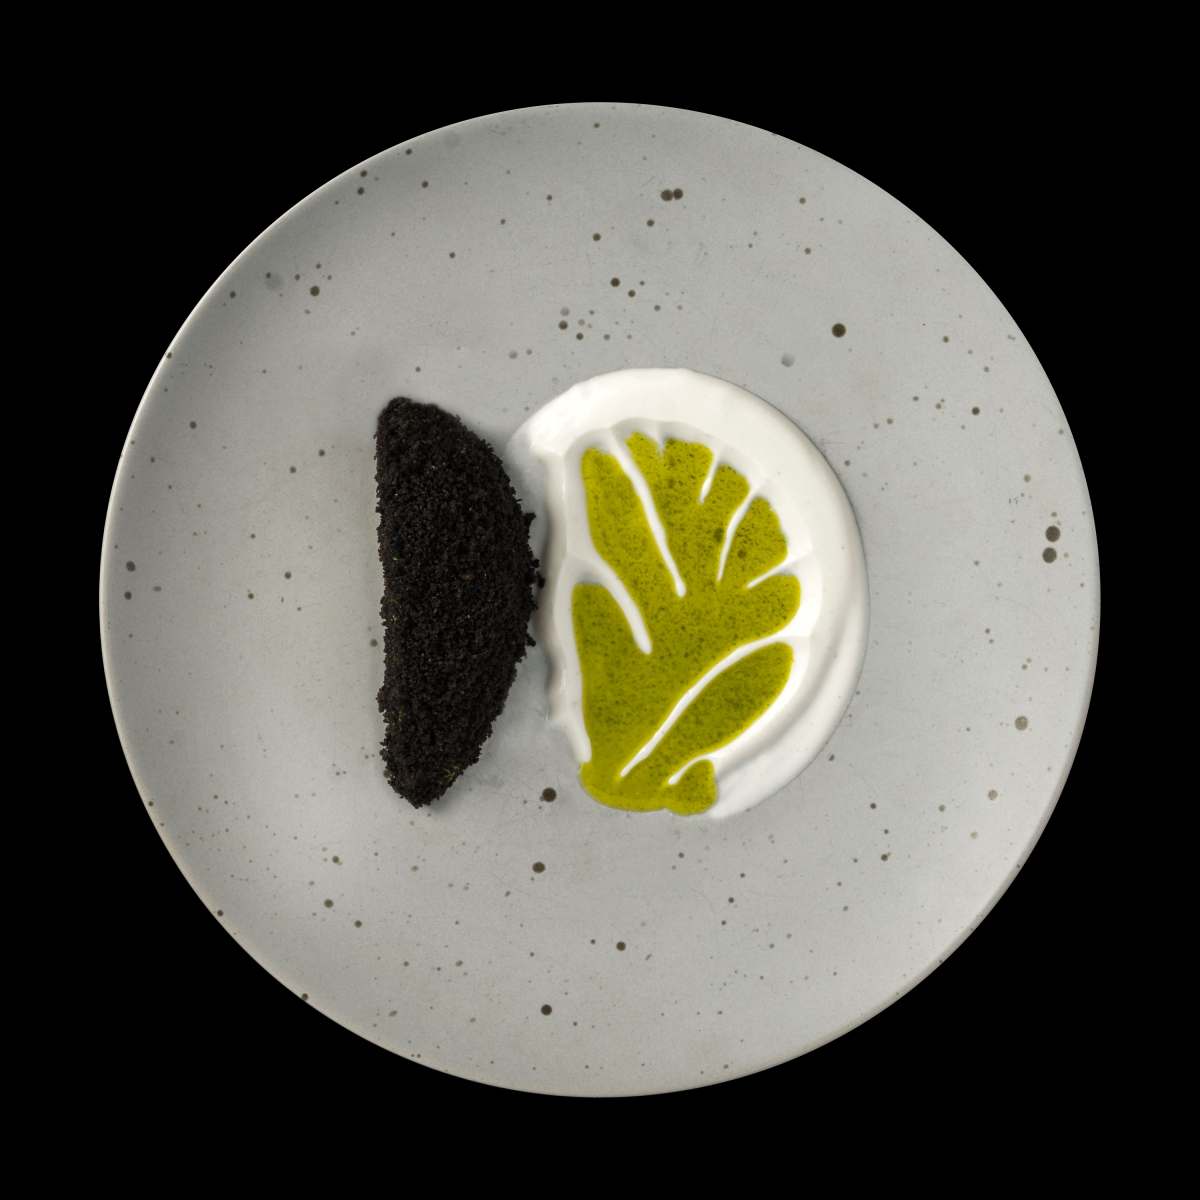 Chefs Recipe: Chilean Hass Avocado from Chef Gonzalo Luzarraga and Co-founder of RIGO' London